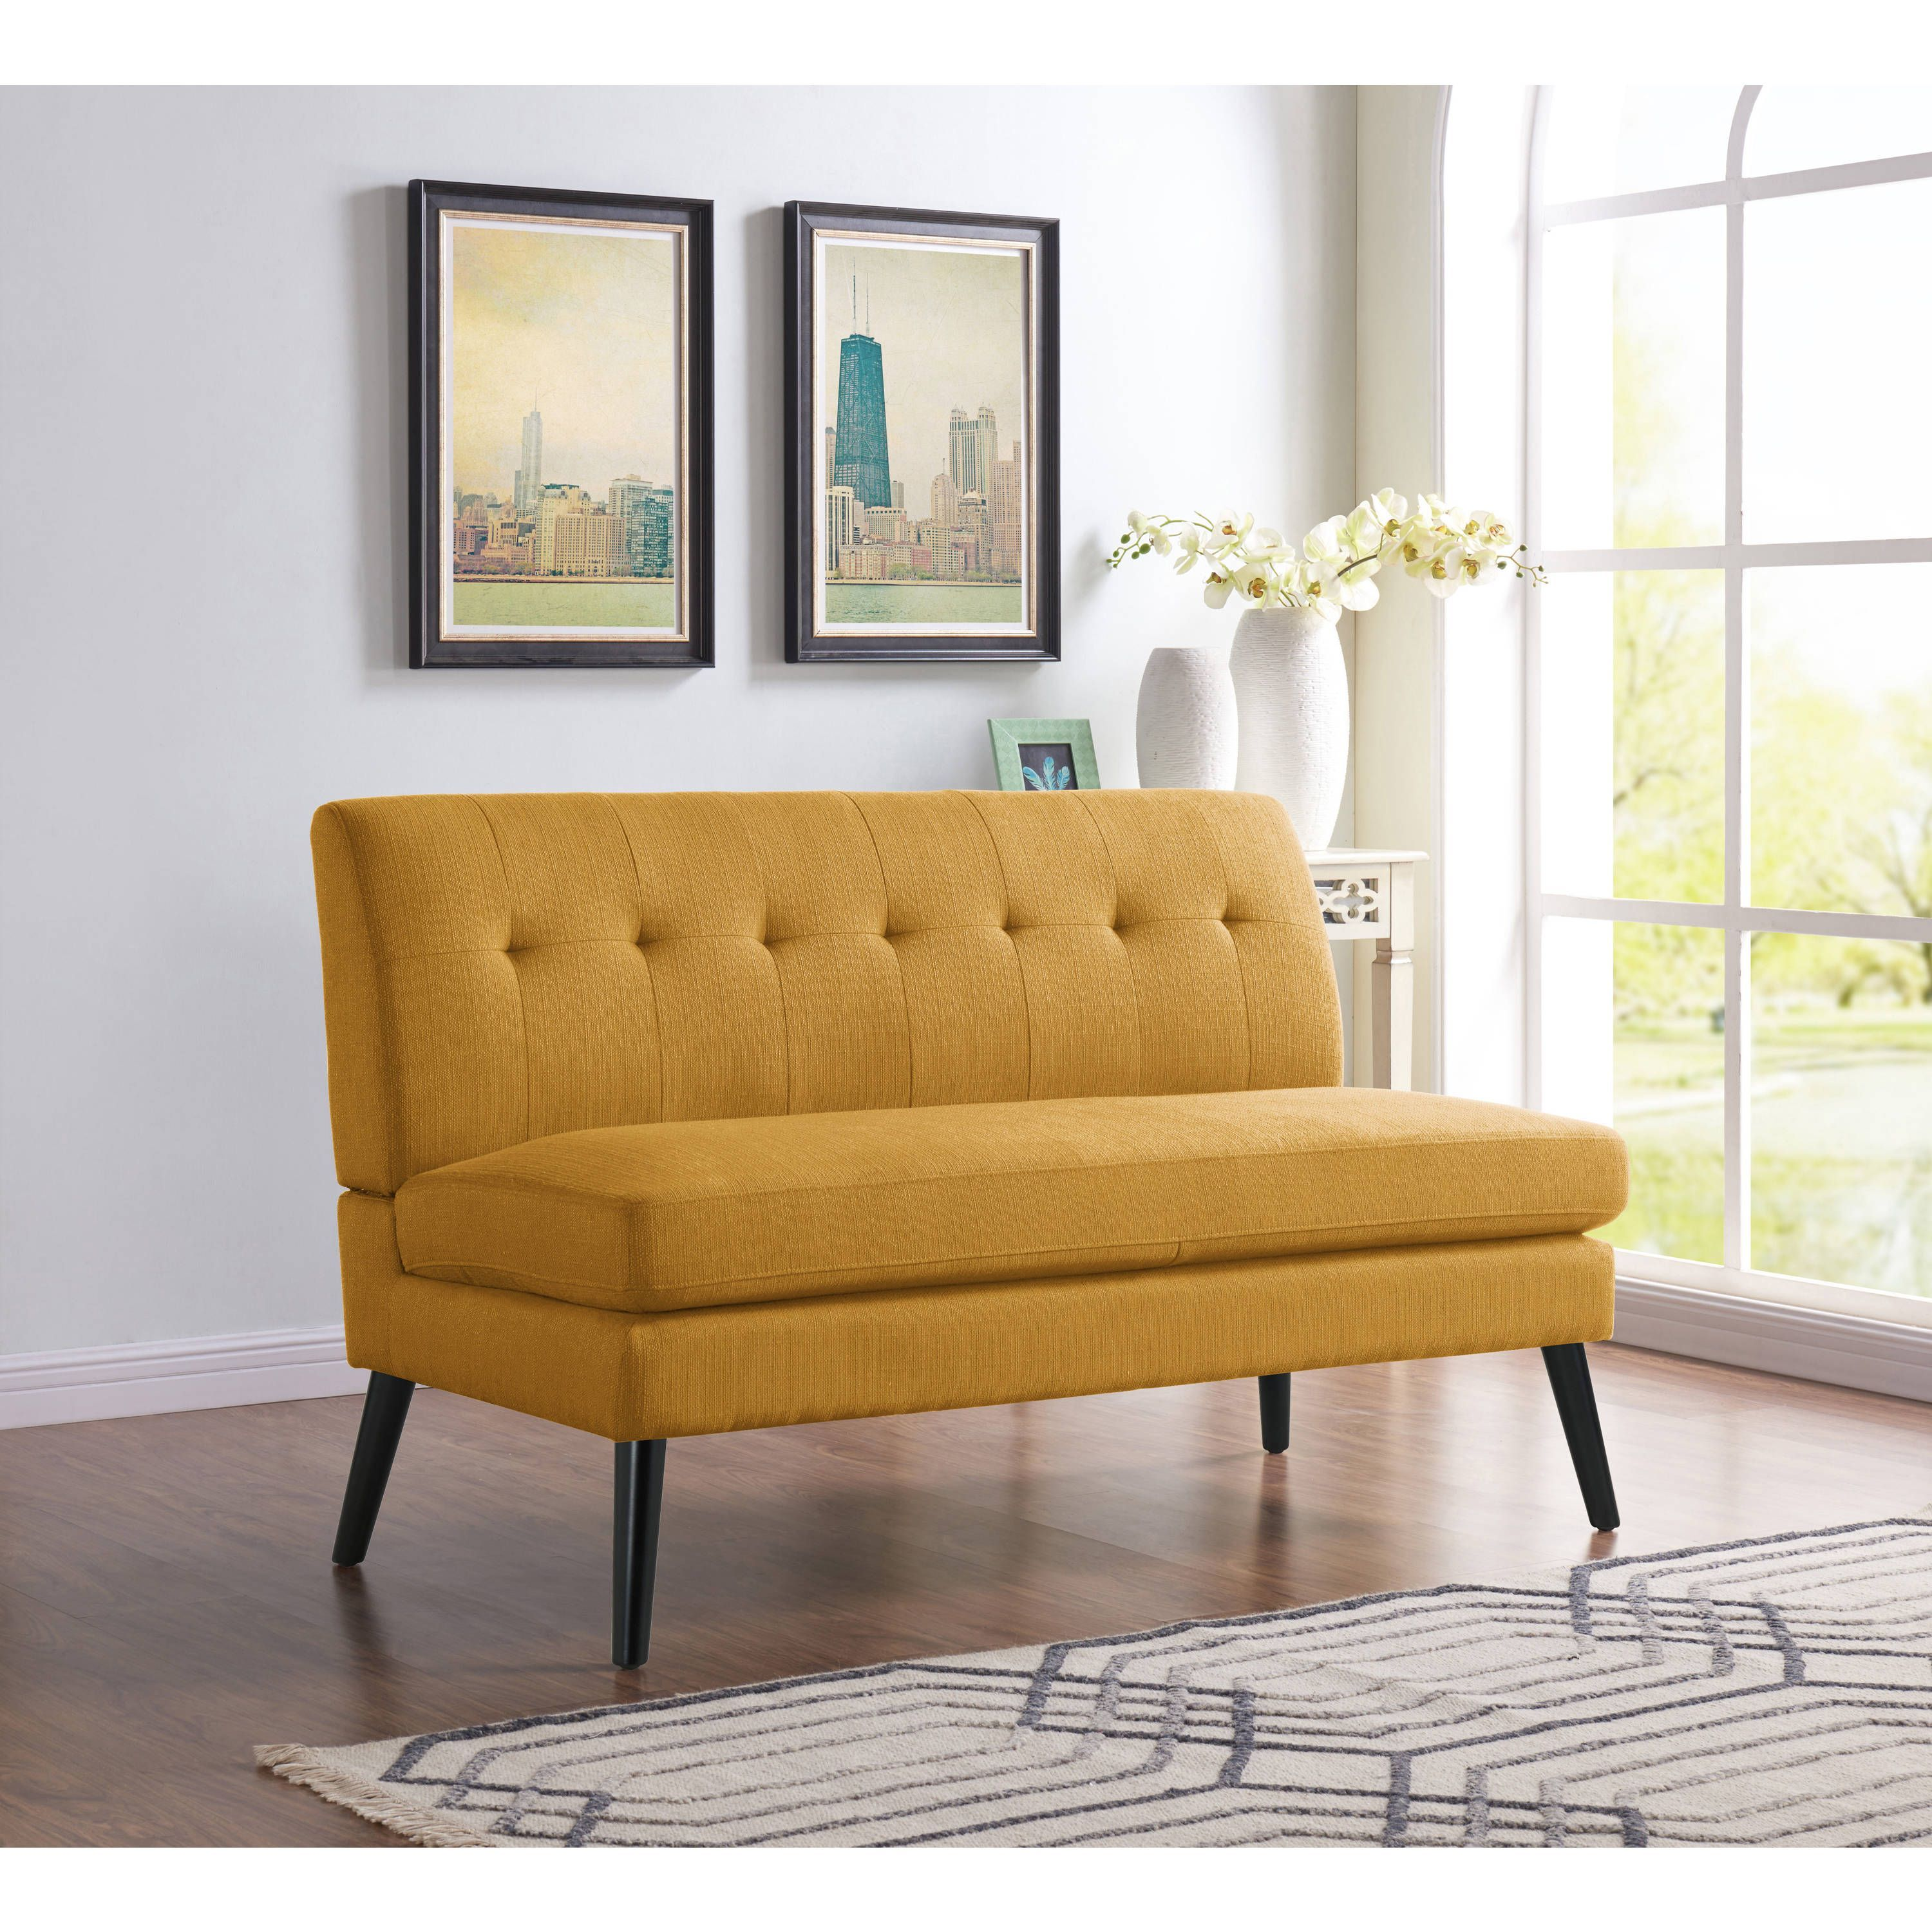 armless loveseats fabric awesome room full morrocan square seat green design ideas cushion living with beautiful sofa and love cream upholstered loveseat